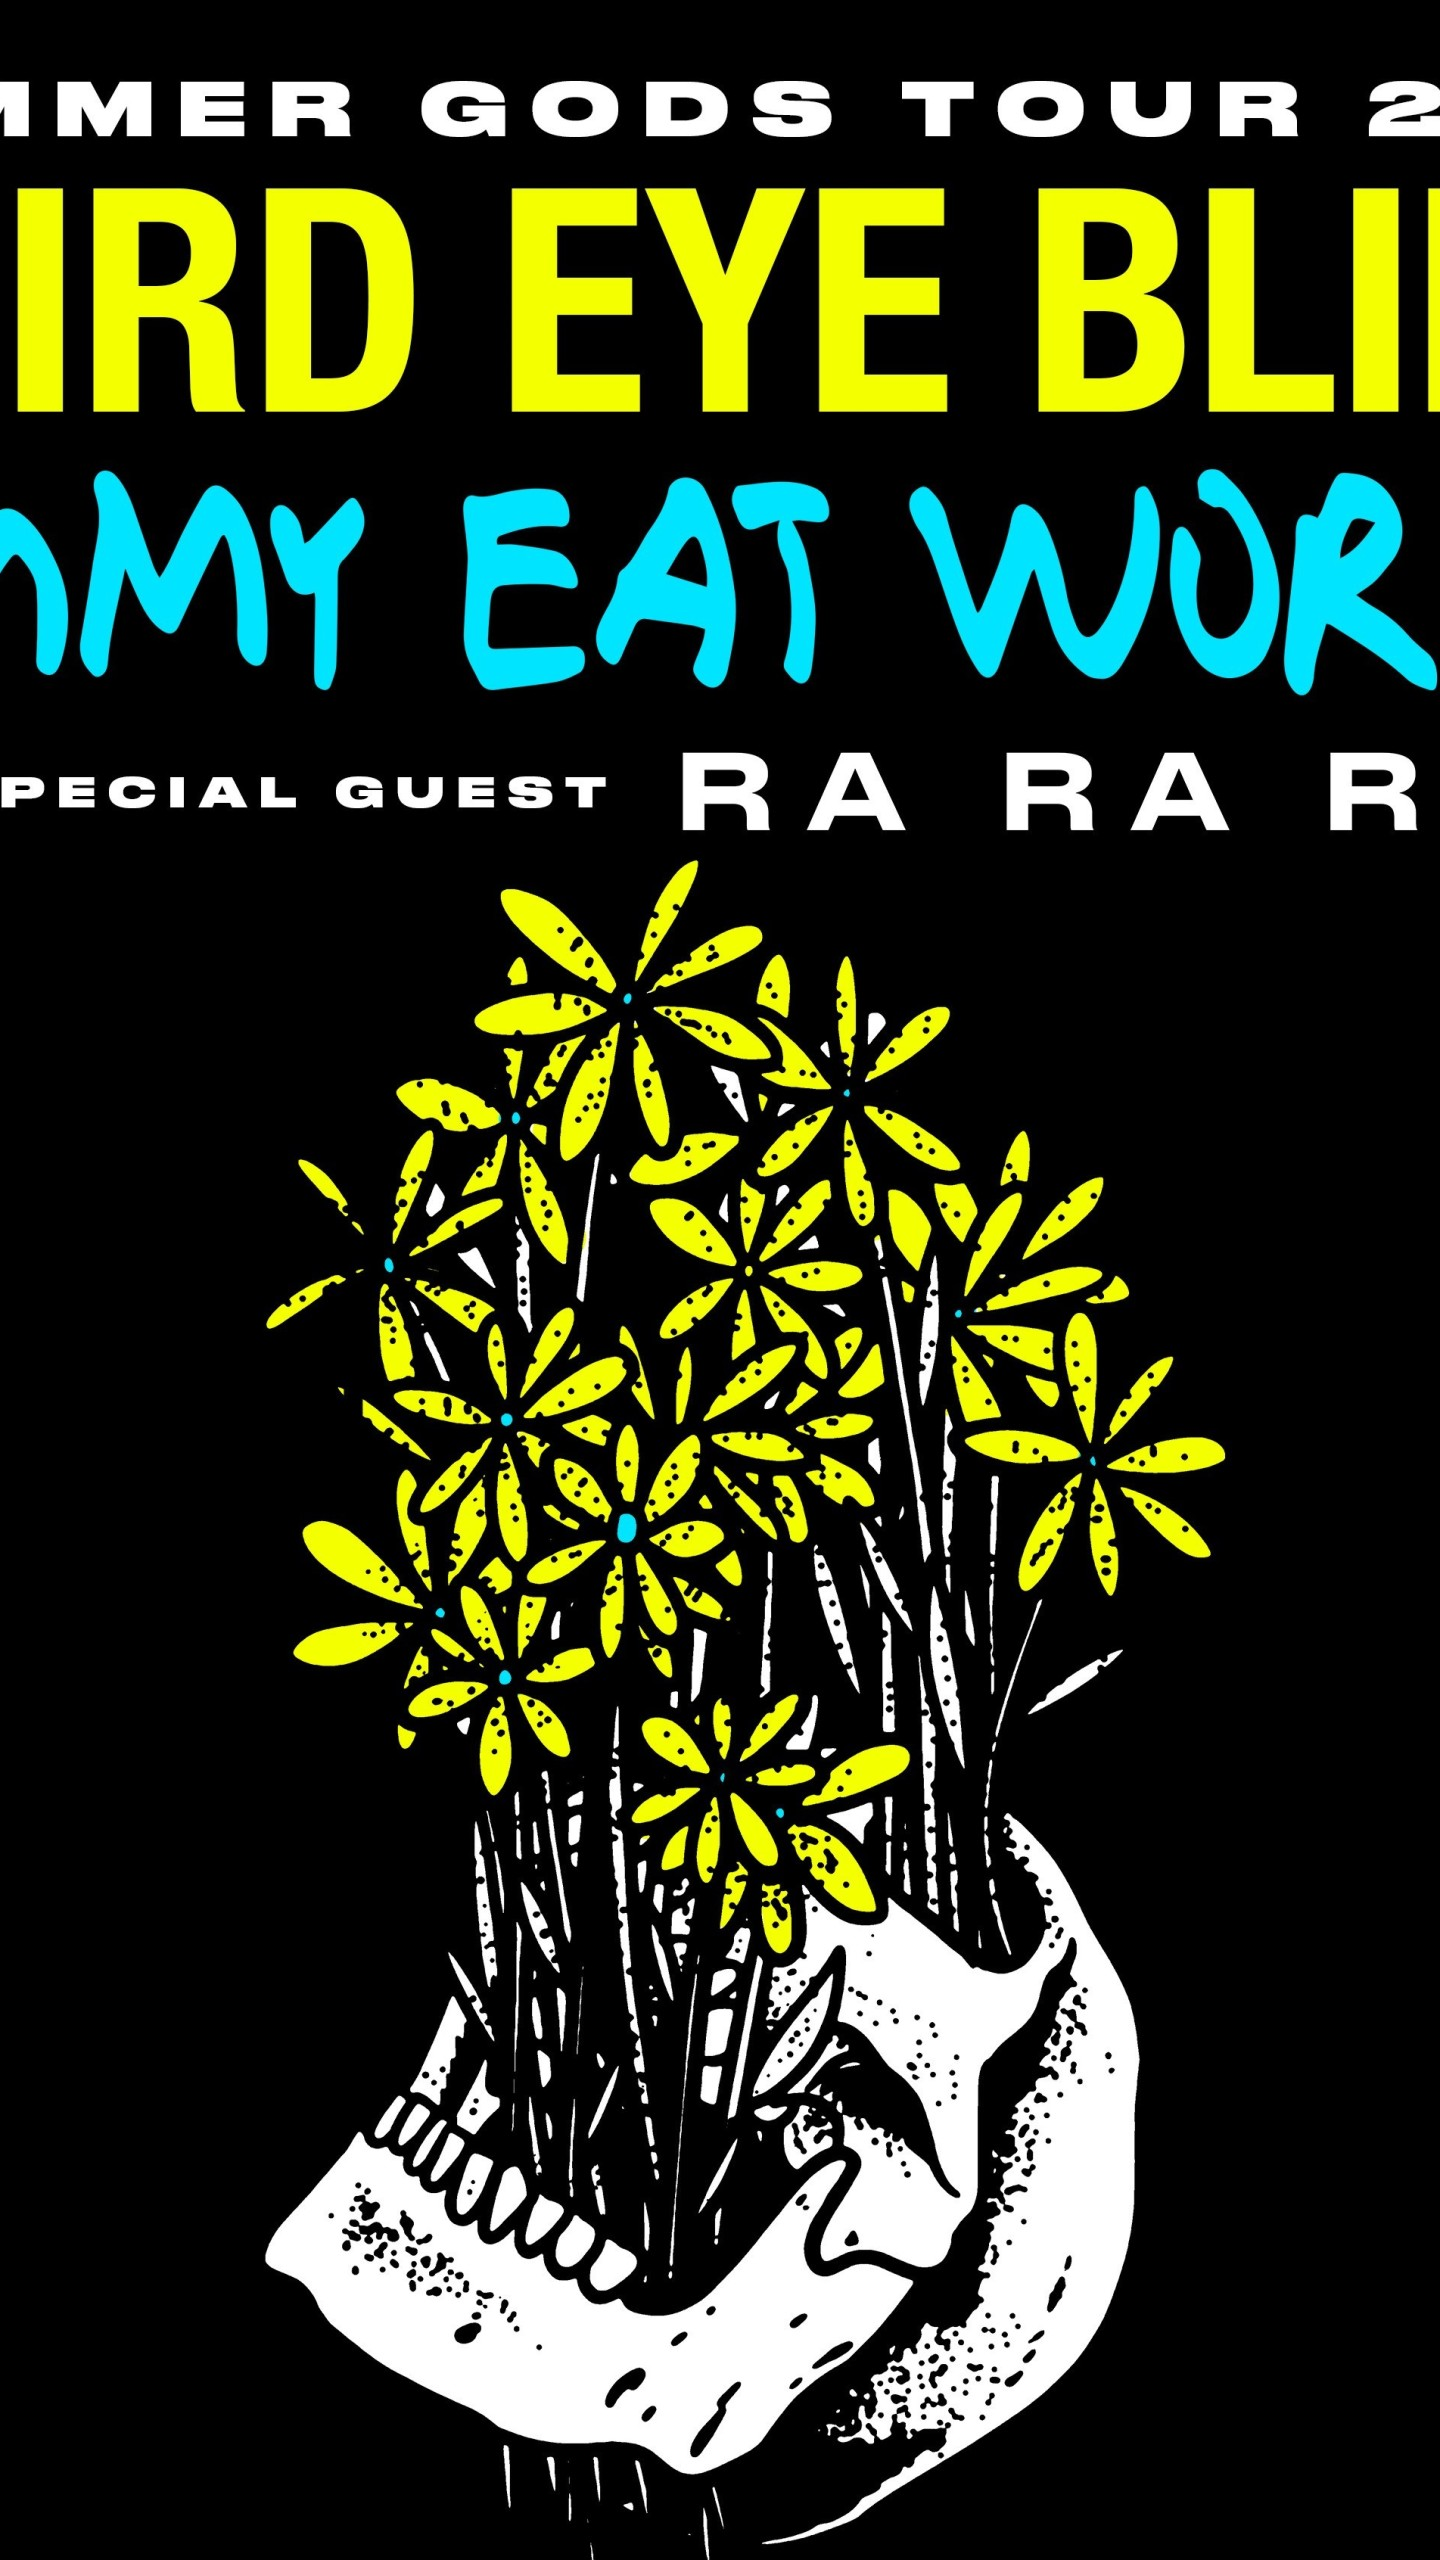 TEB & Jimmy Eat World_1548436109649.jpg.jpg